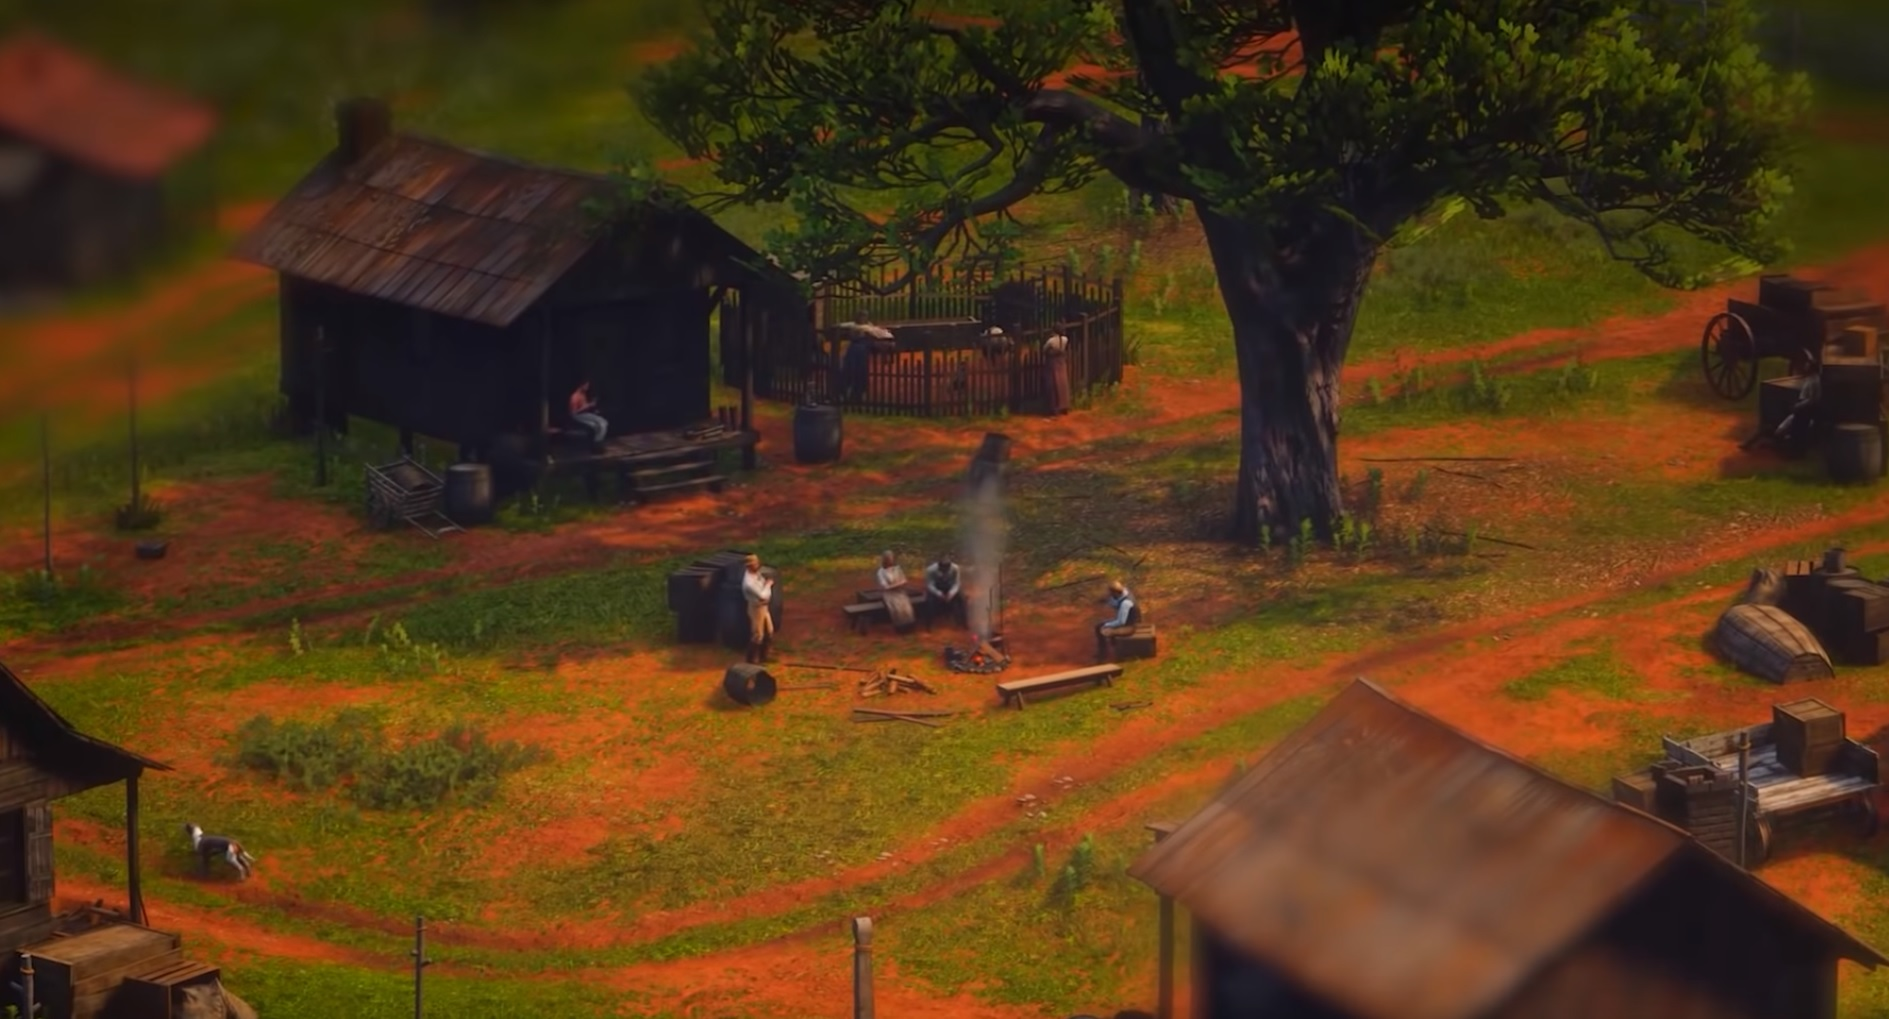 See the world of Red Dead Redemption 2 from a whole new perspective with the 'Tilt Shift' mod screenshot